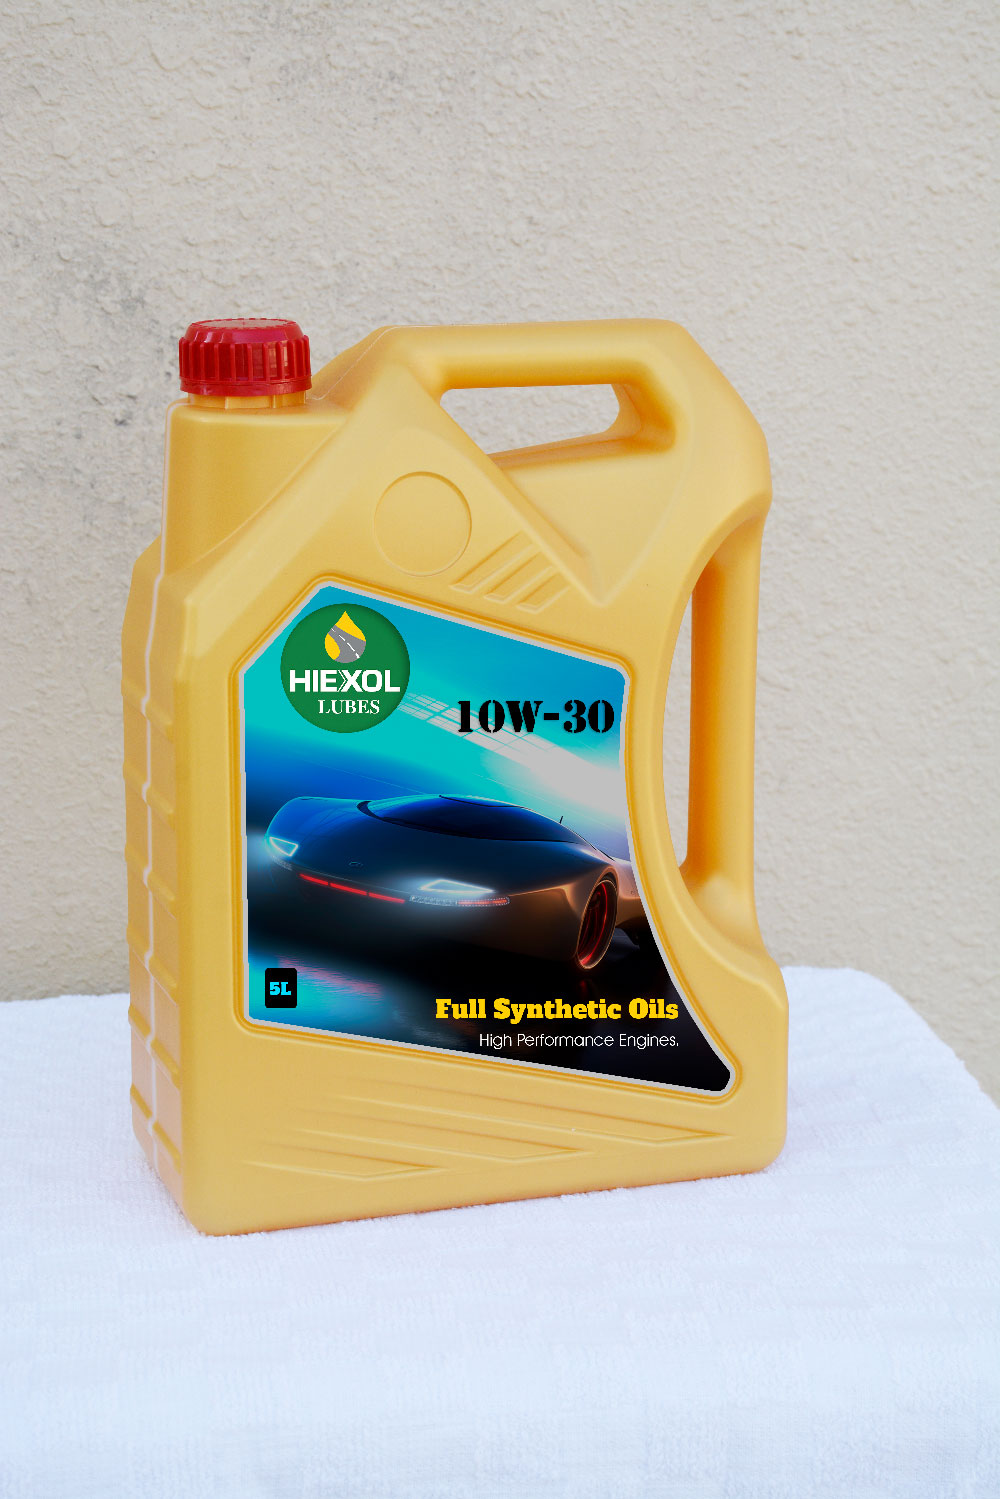 Full Synthetic Oils